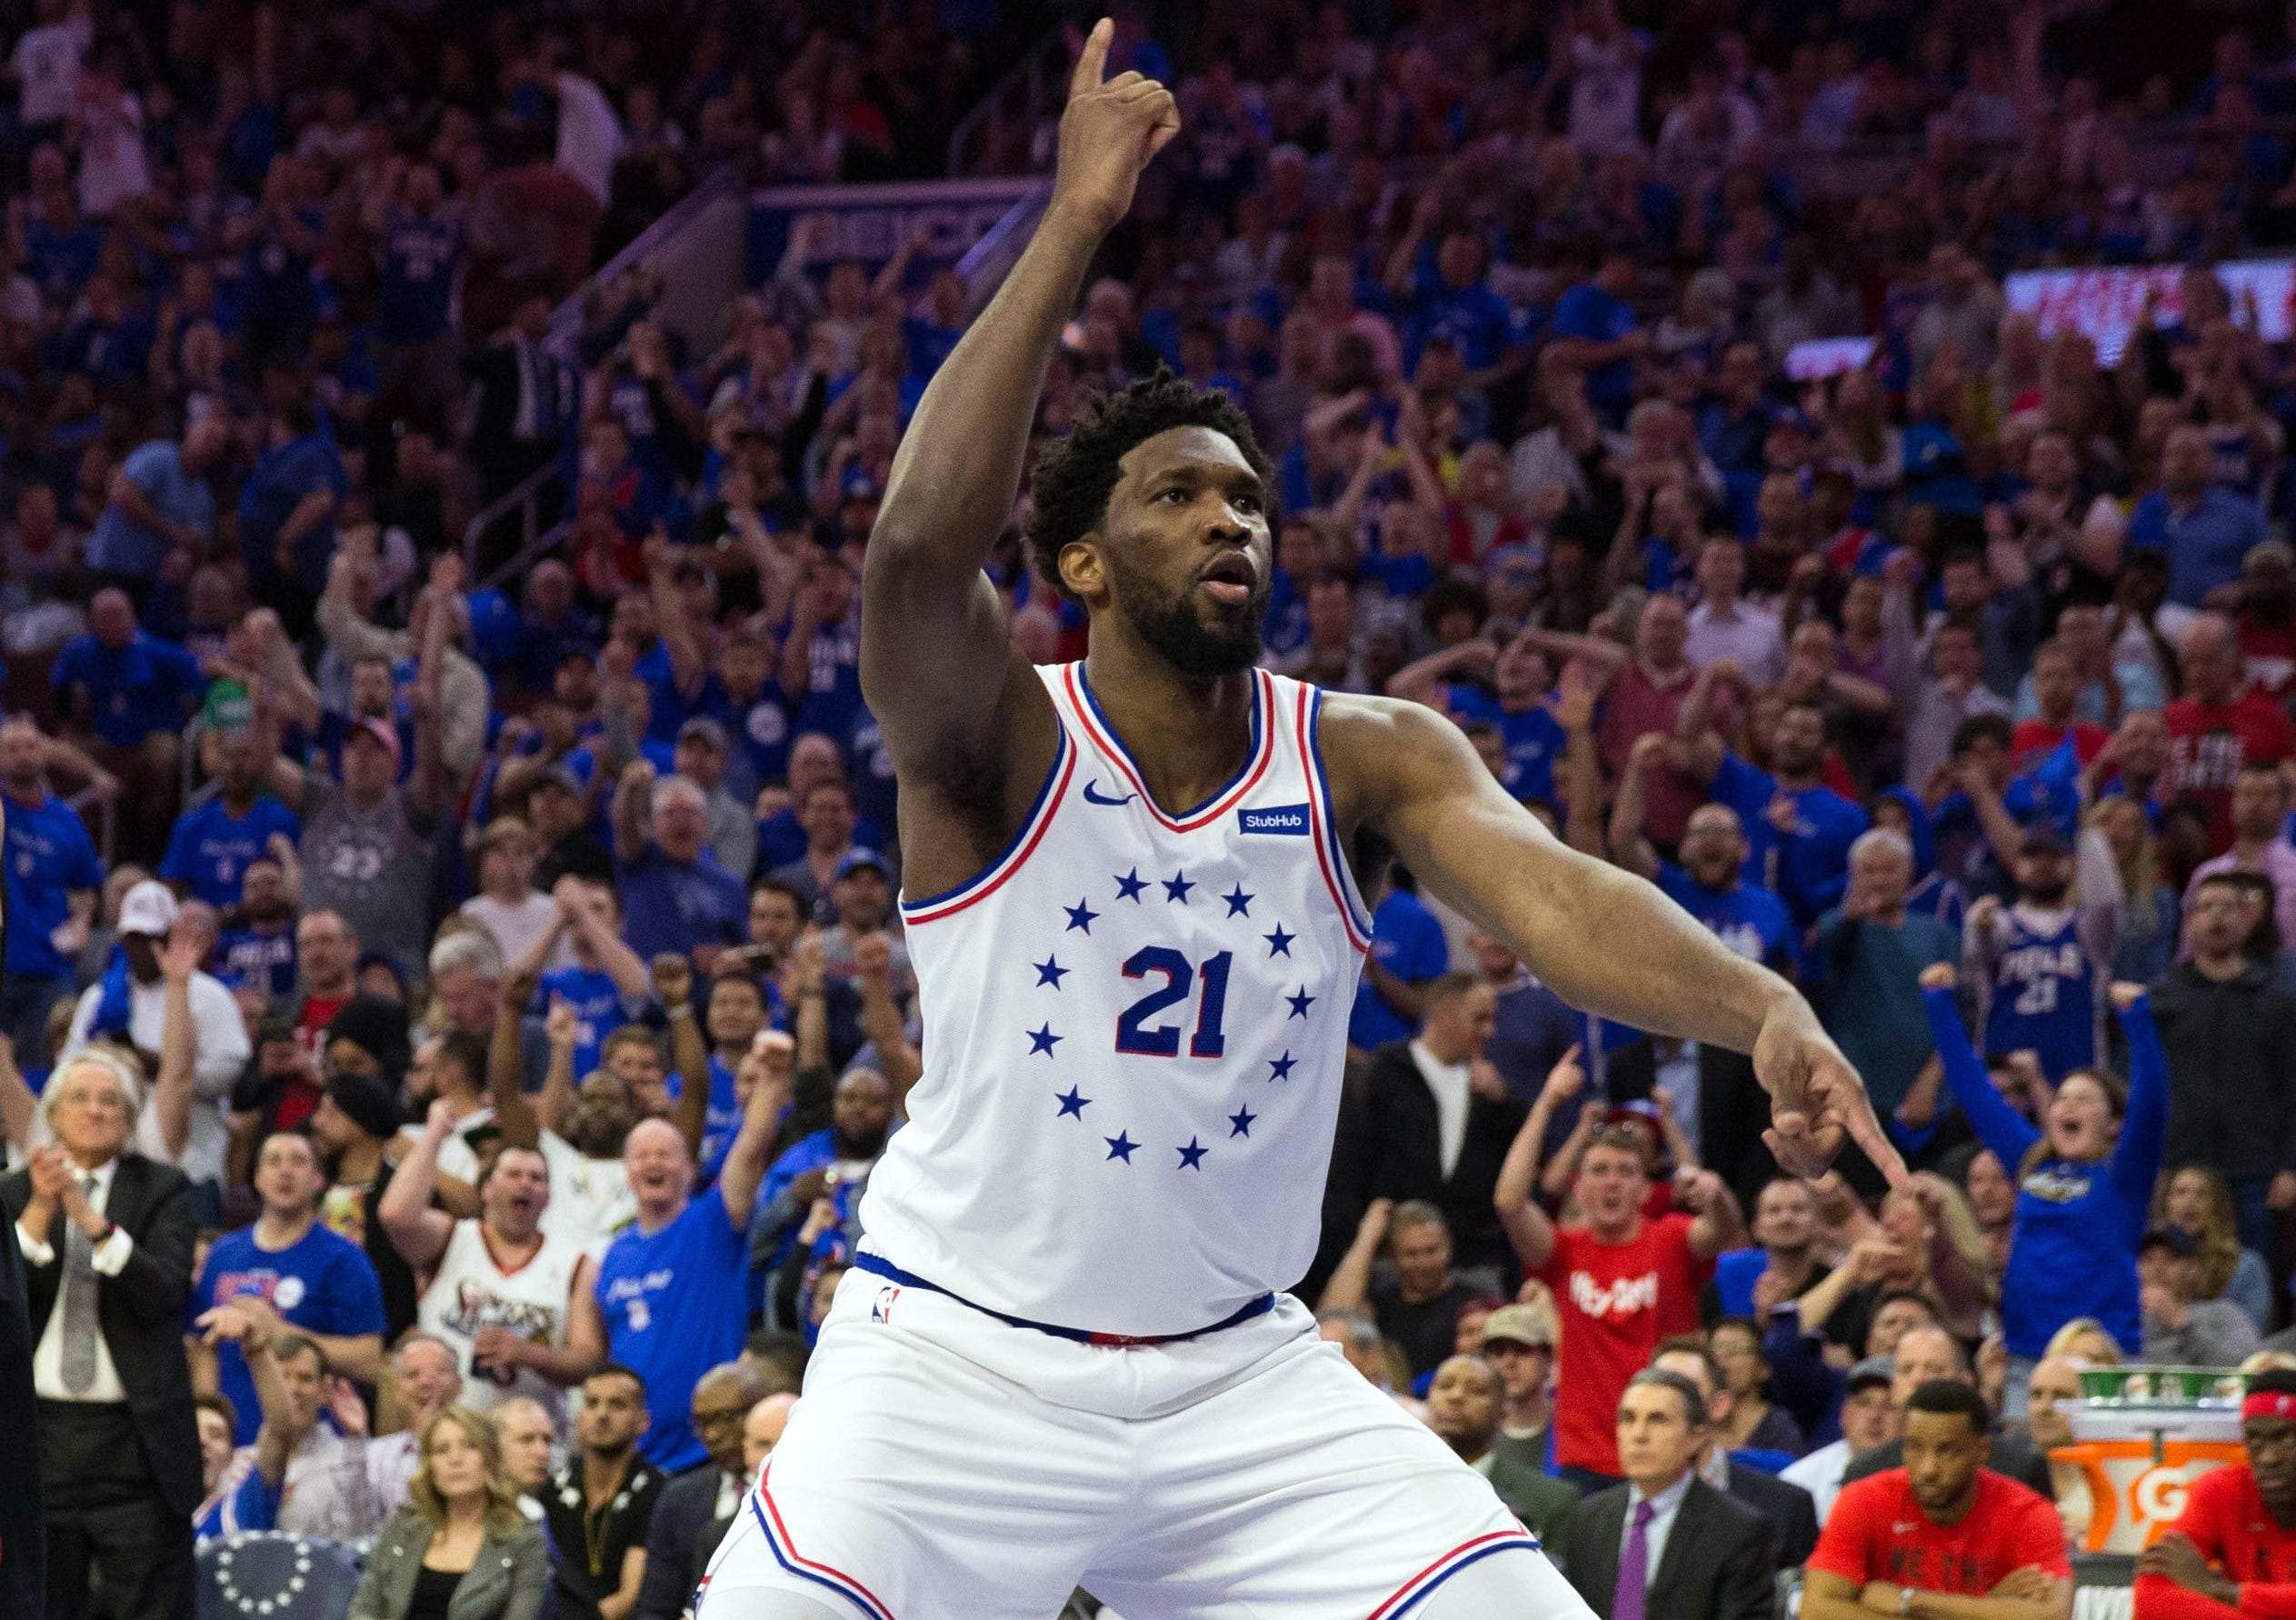 May 2: Sixers center Joel Embiid celebrates a big bucket during Game 3 against the Raptors in Philadelphia.